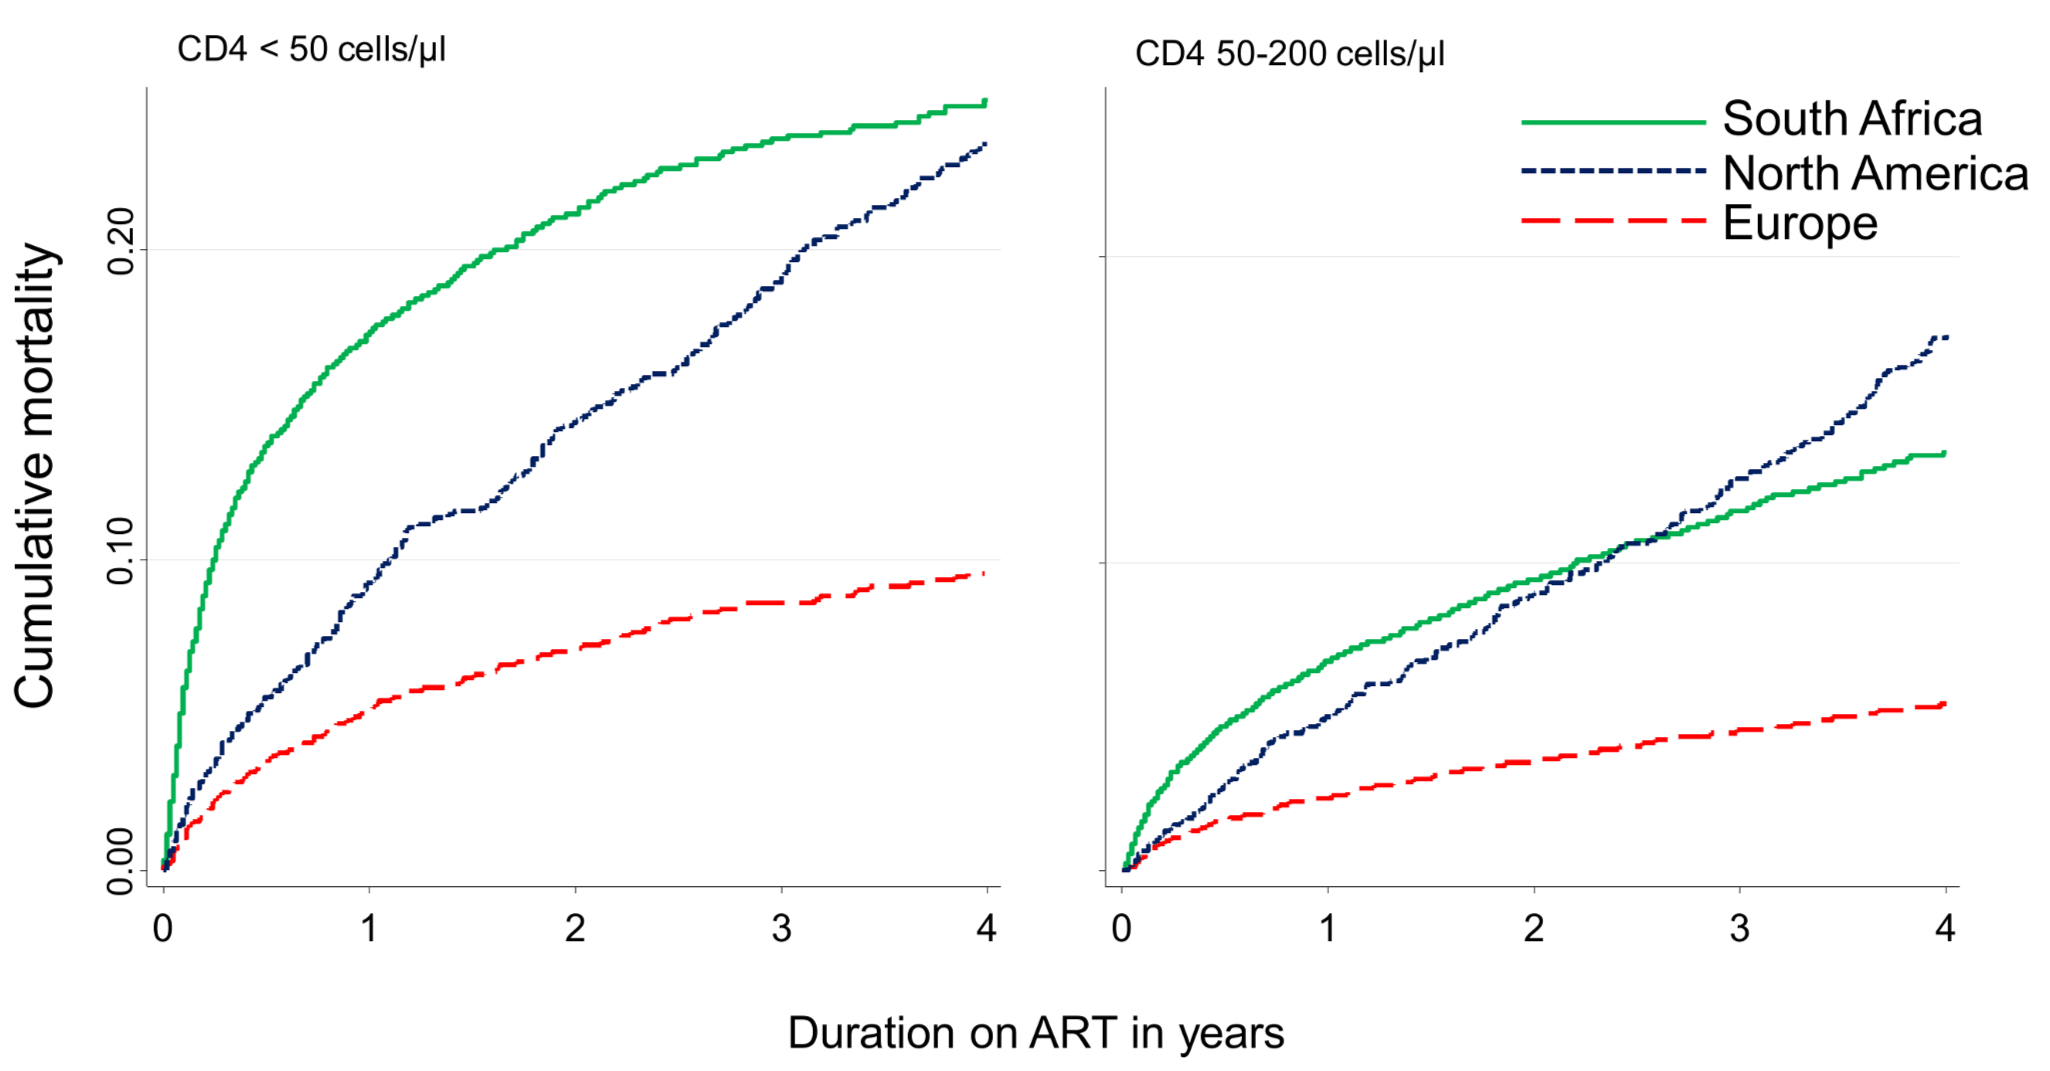 Cumulative incidence of mortality up to four years after start of ART by region and CD4 count at ART initiation, corrected in South Africa for mortality under-ascertainment.